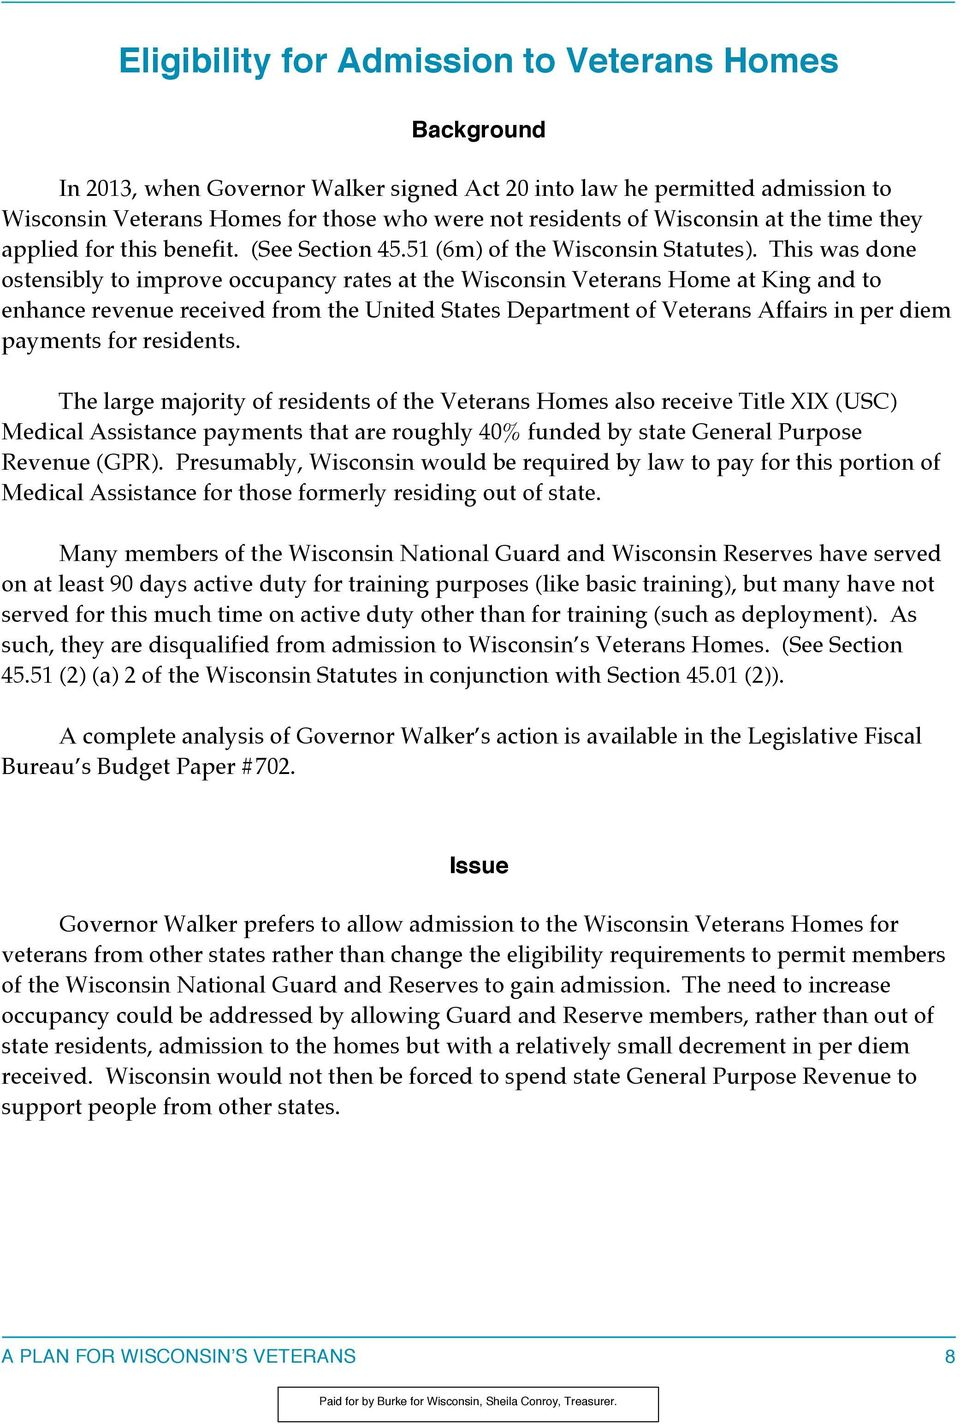 This was done ostensibly to improve occupancy rates at the Wisconsin Veterans Home at King and to enhance revenue received from the United States Department of Veterans Affairs in per diem payments